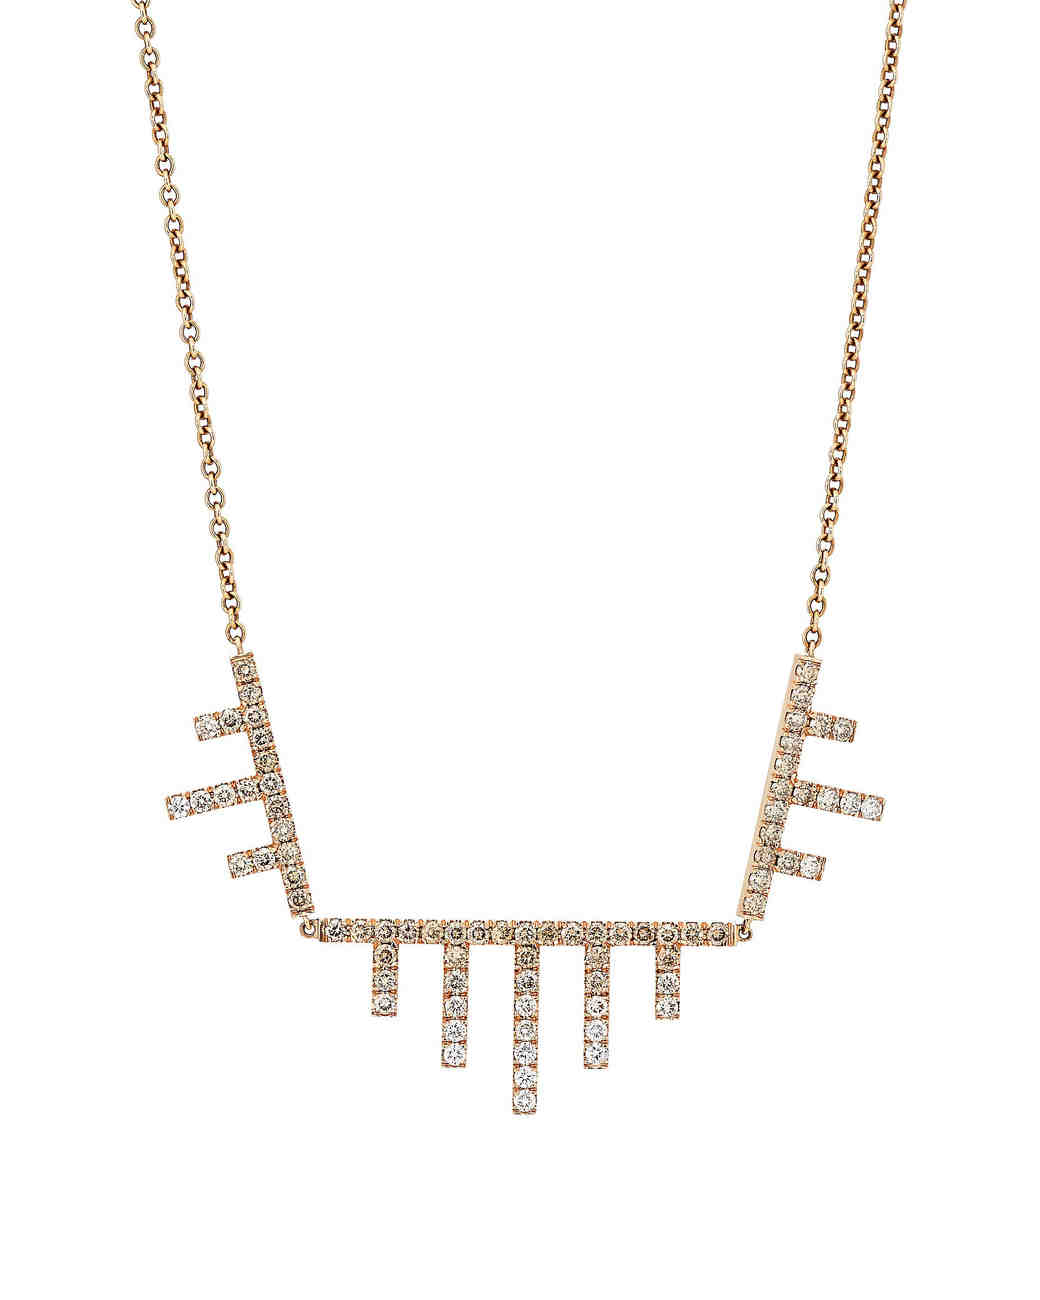 three diamond-encrusted geometric-shaped pendants cable chain